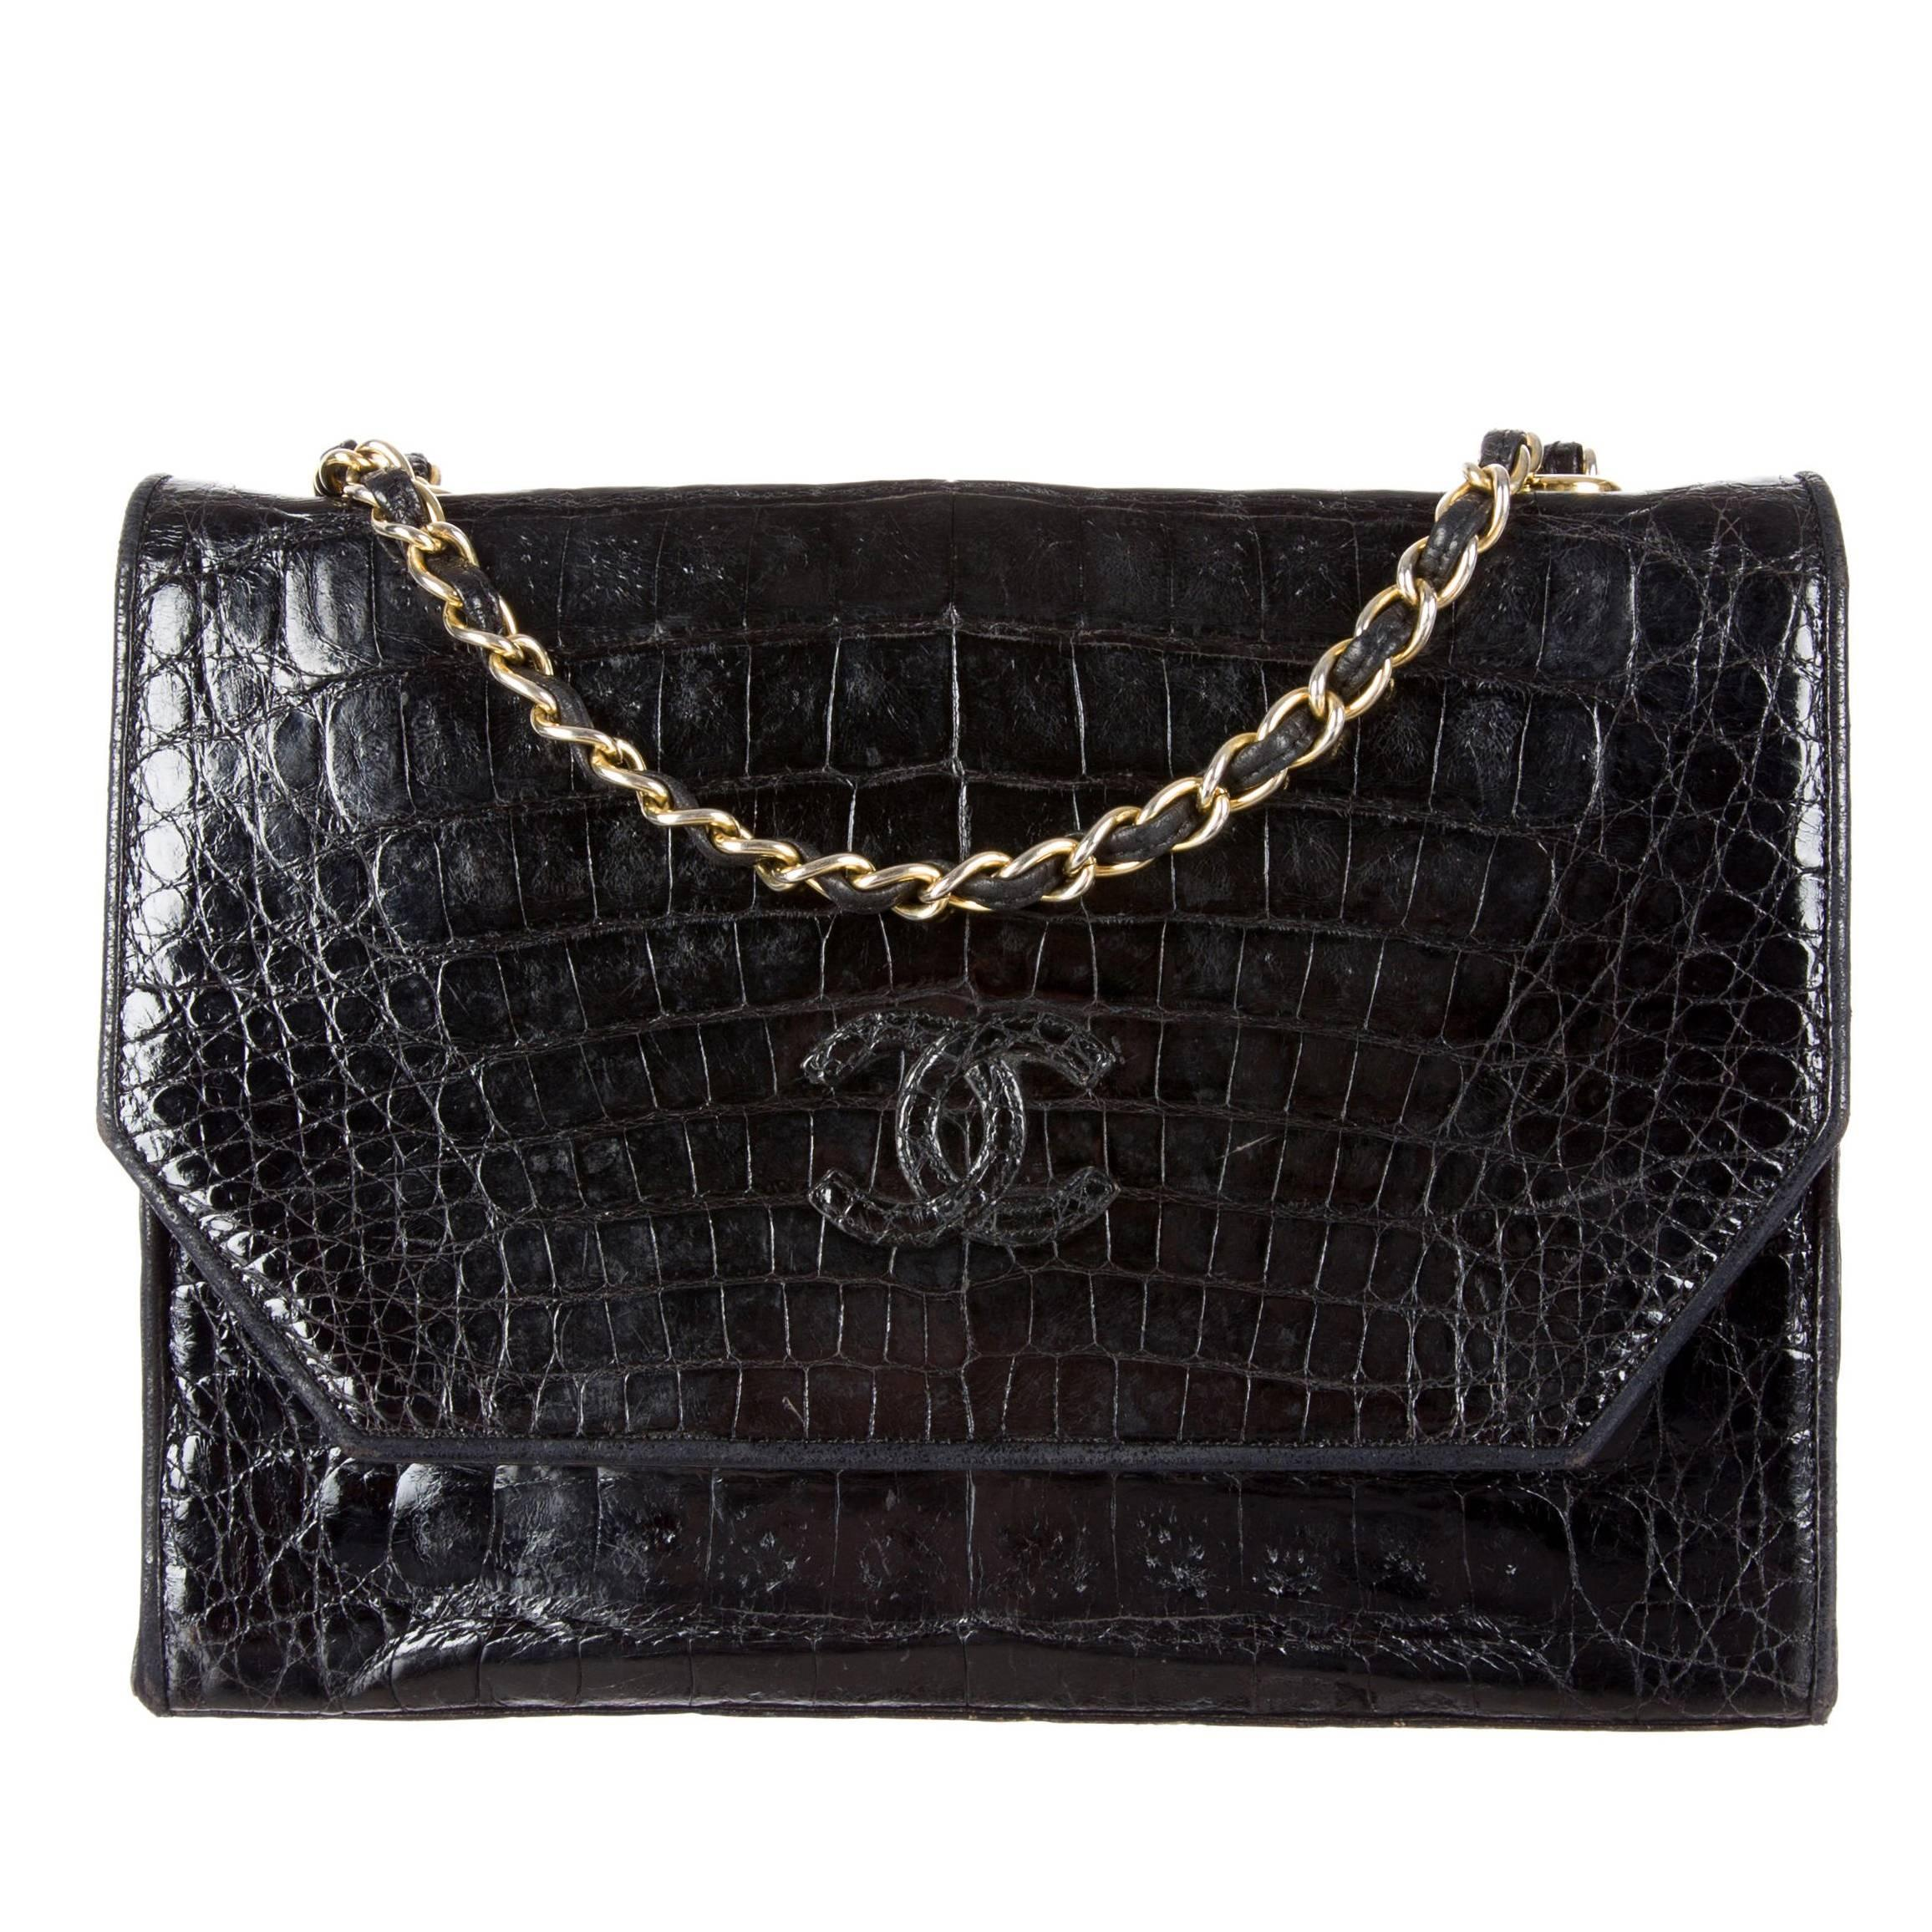 45a28bc3ffae Chanel Vintage Lambskin Drawstring Party Puffy Evening Crossbody Shoulder  Bag For Sale at 1stdibs